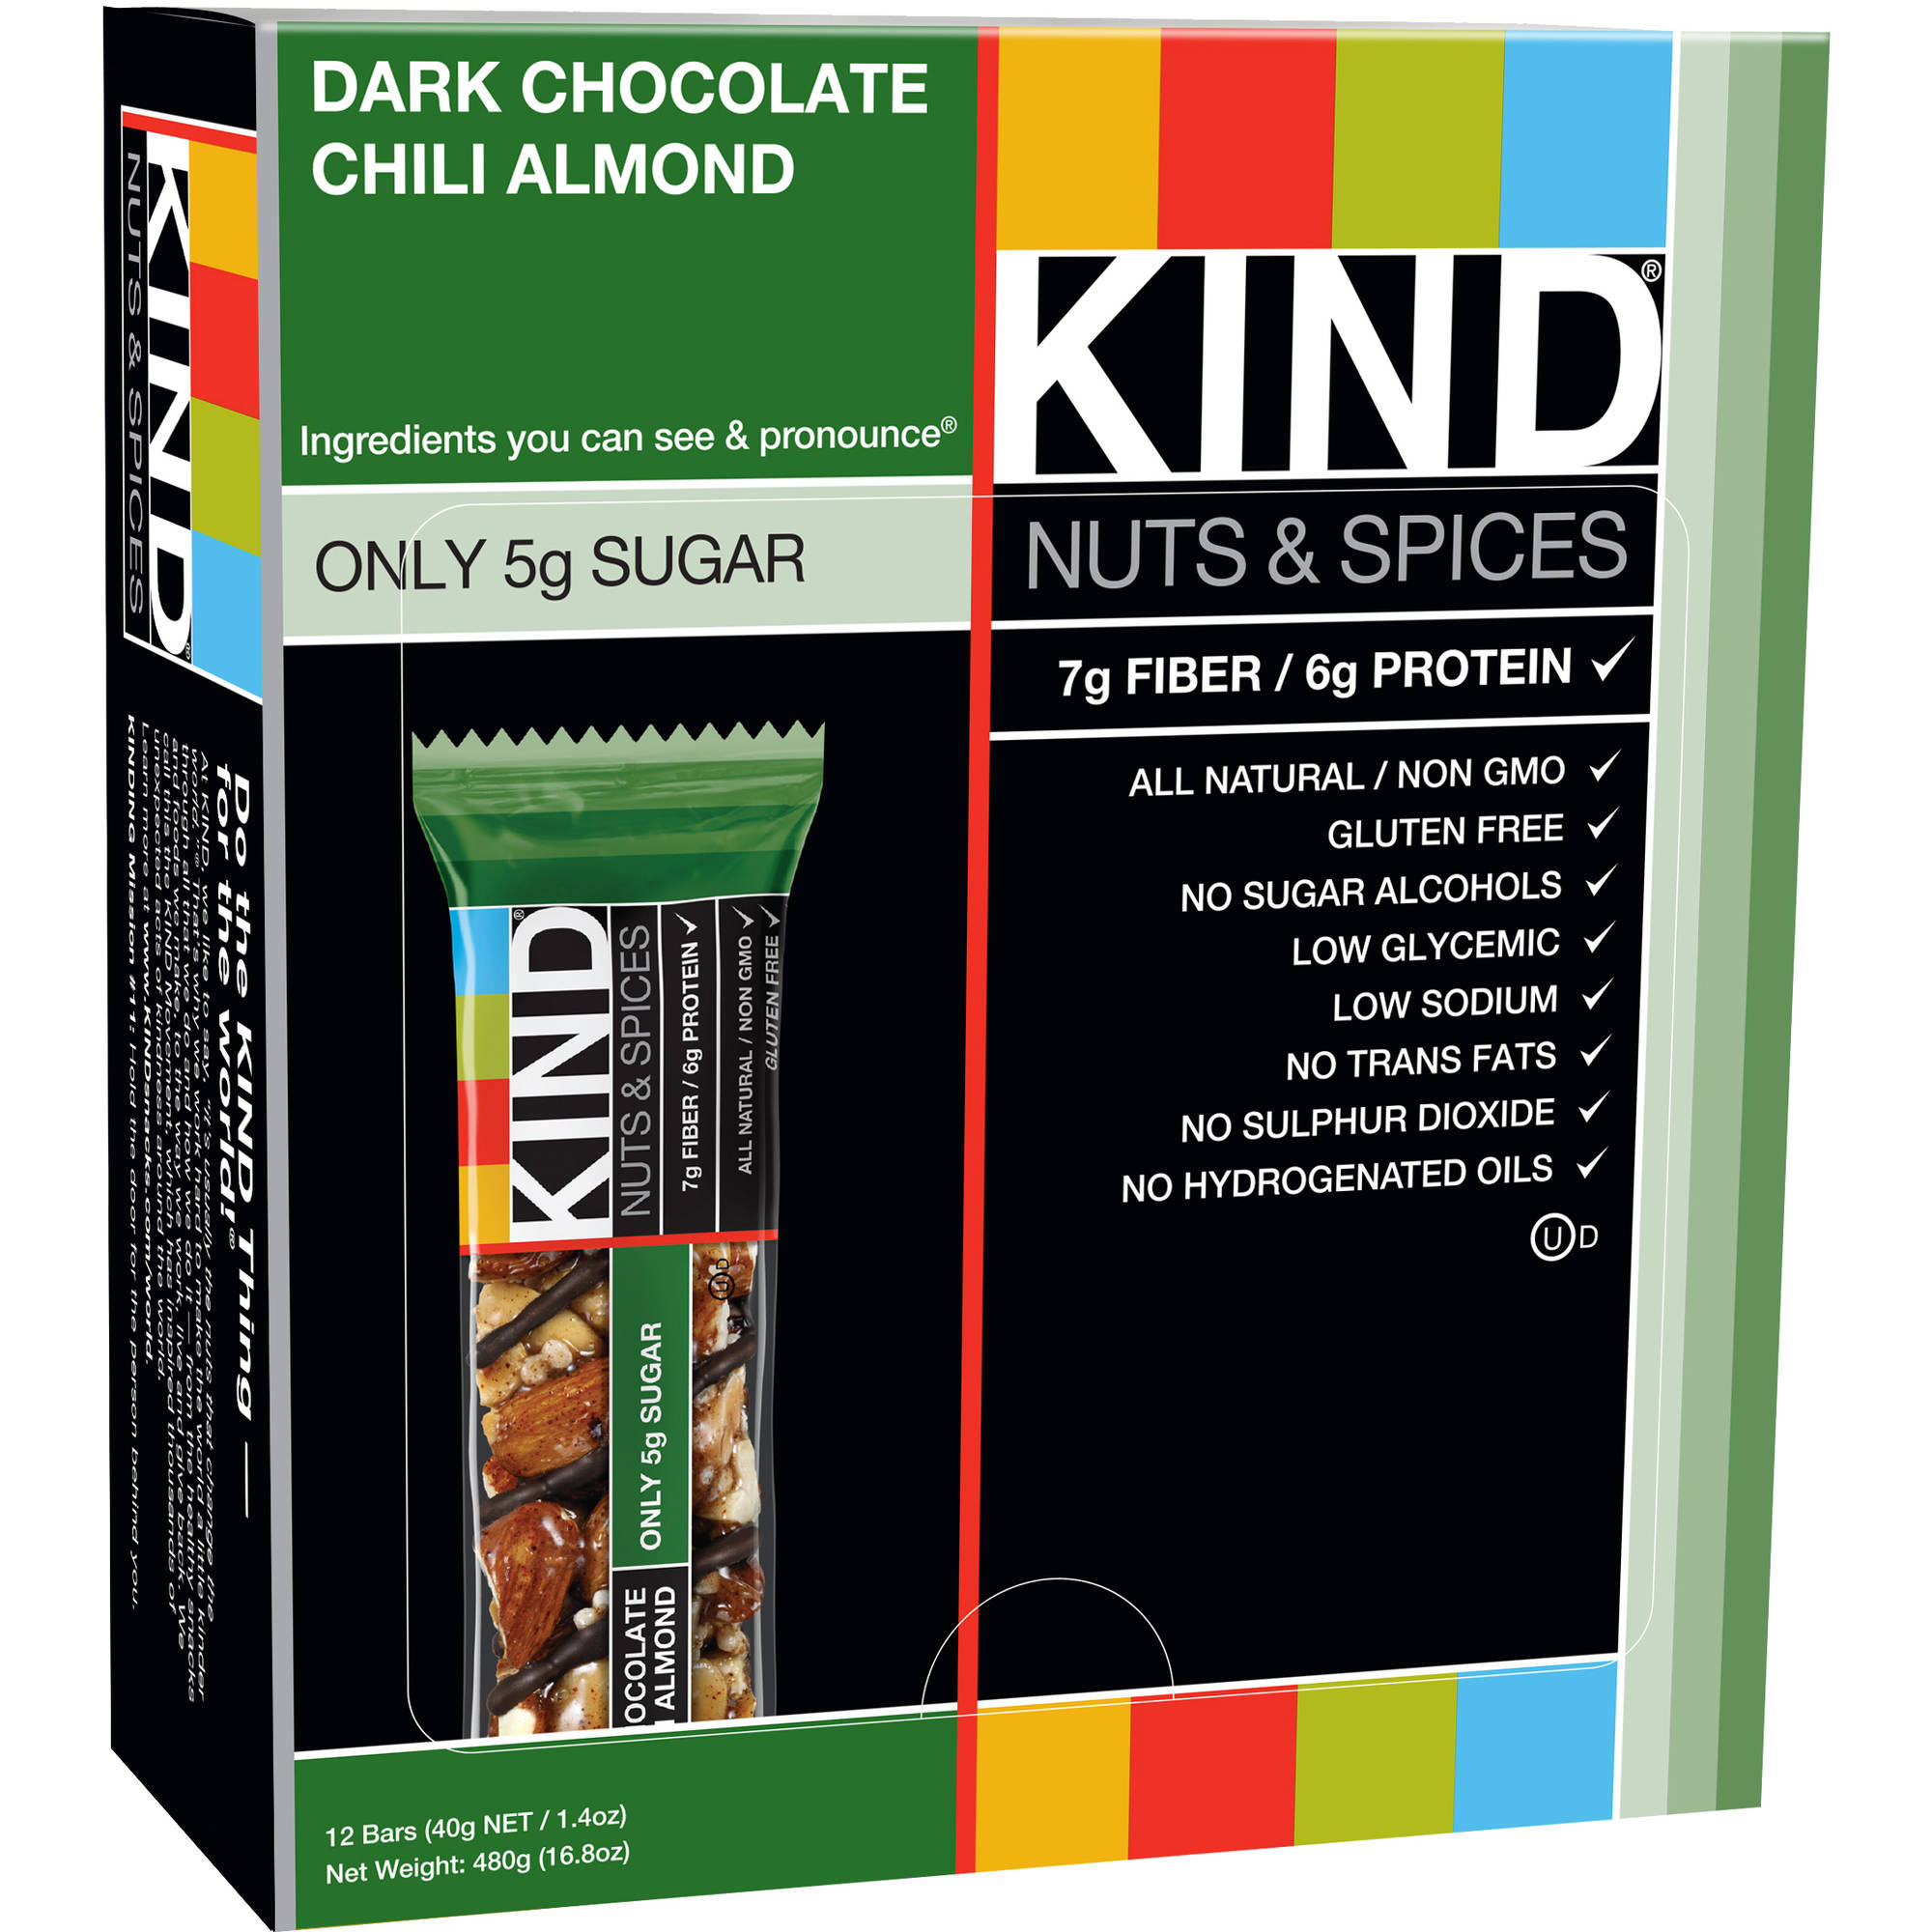 KIND Nuts & Spices Bars, Dark Chocolate Chili Almond, 1.4 oz, 12 Count